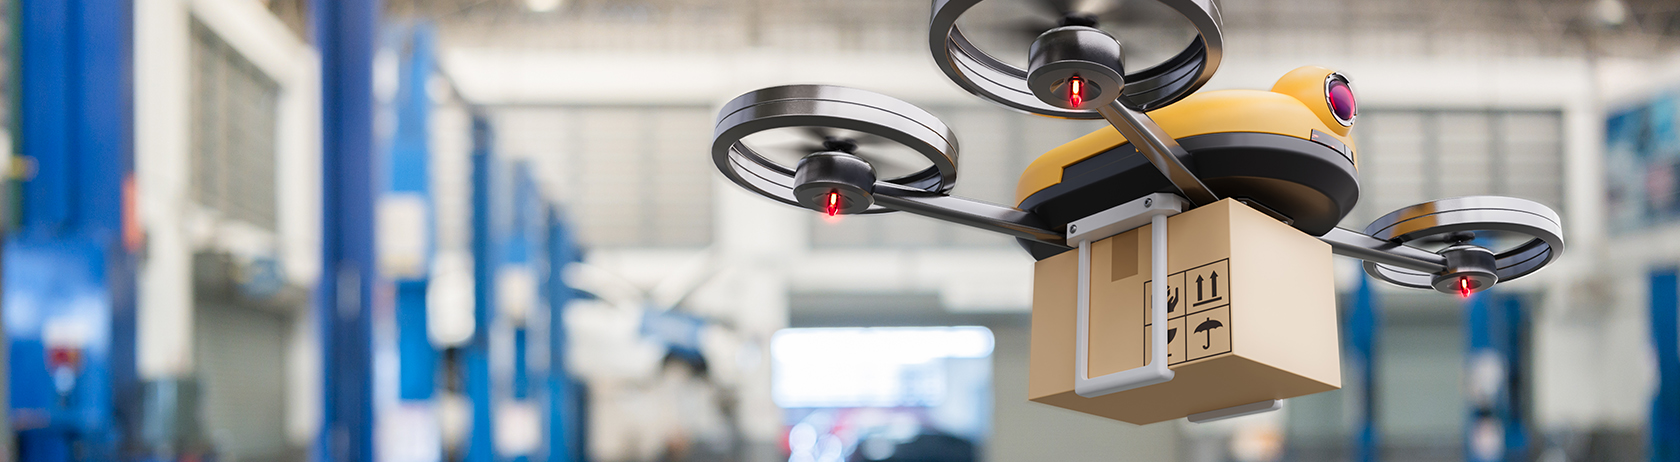 Delivery drone in a smart warehouse